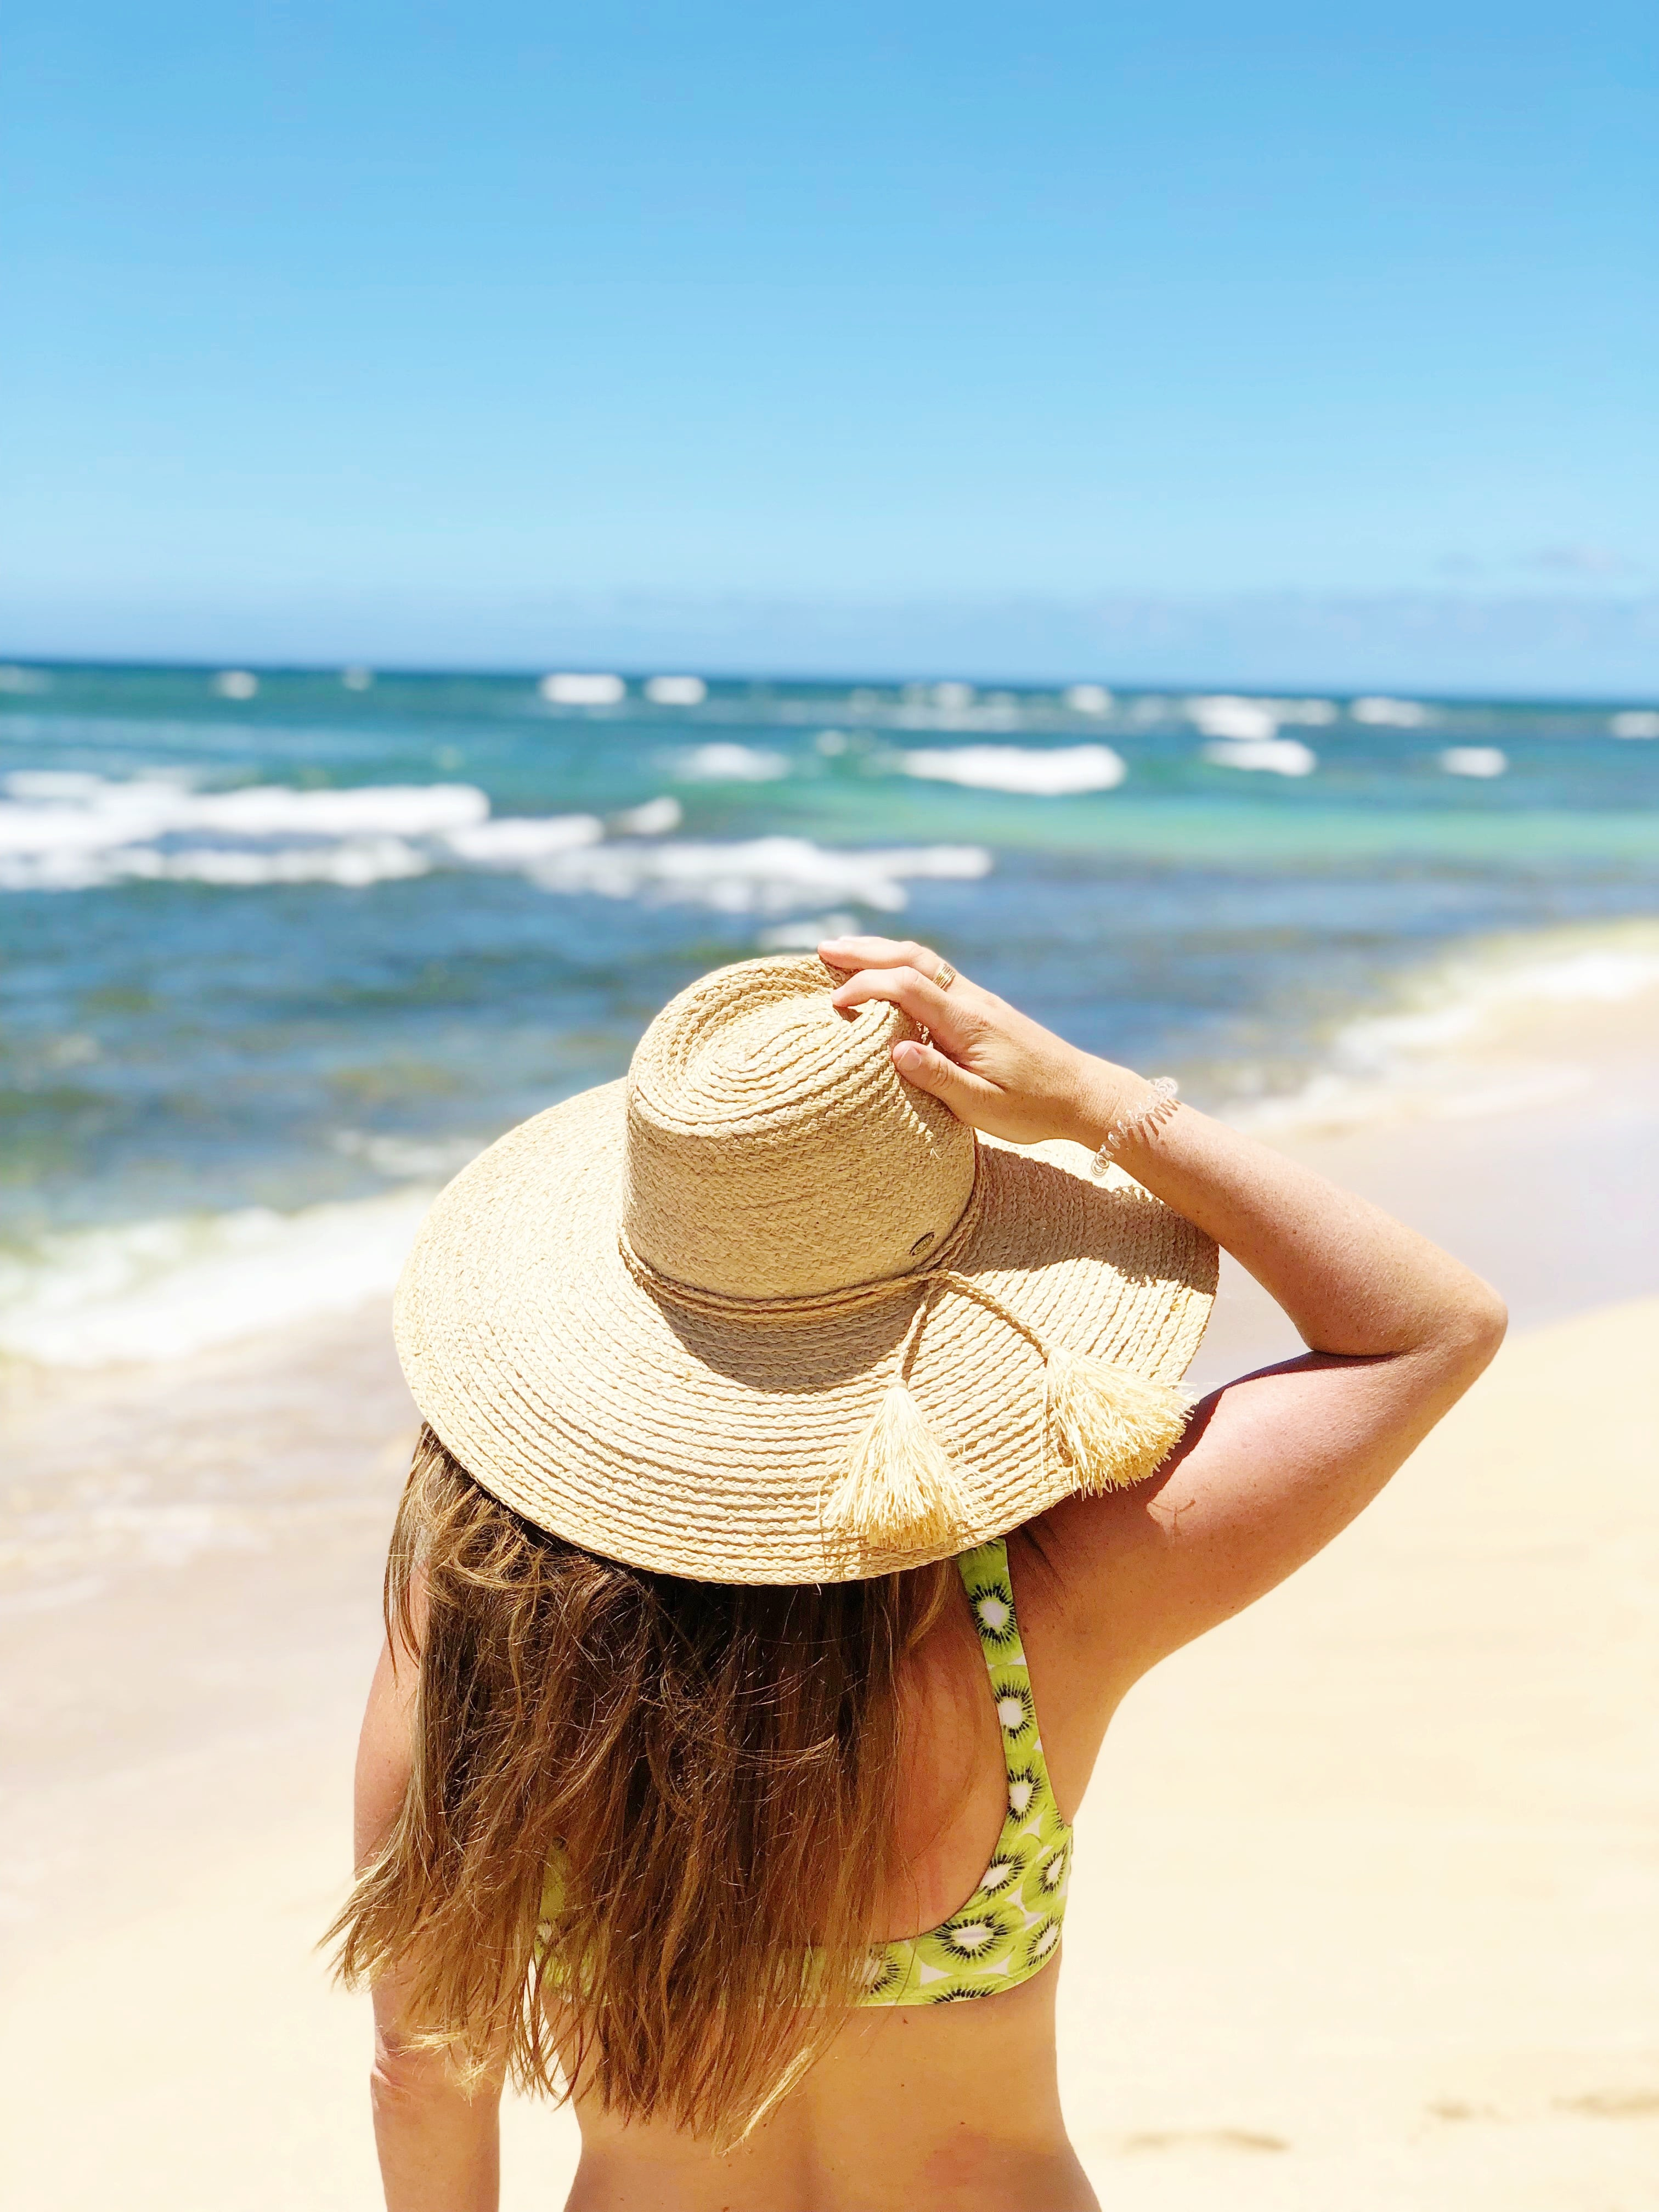 5 Best Summer Hats - Where to find the best summer hats for women that are both fashionable and functional!